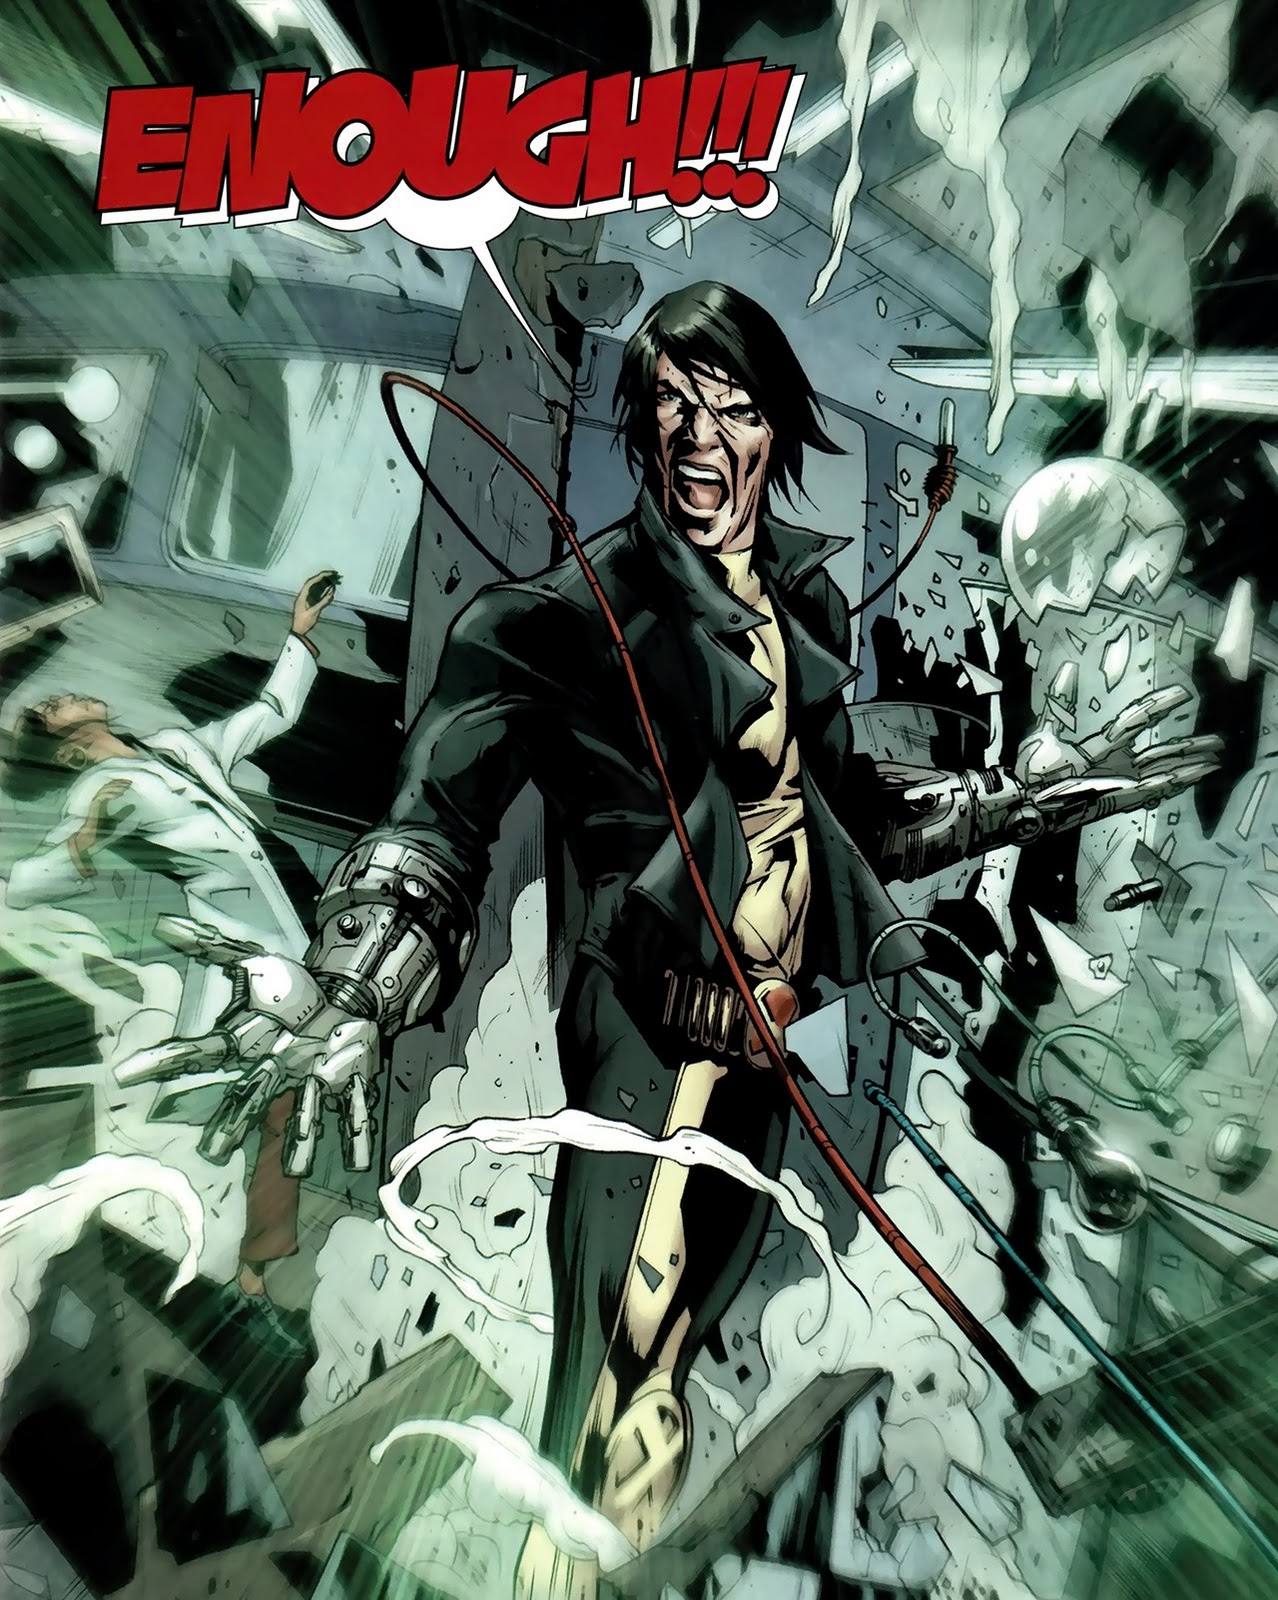 He epitomizes everyone still pissed off after bastions attack thats when rogue comes in remember this is a mike carey x books if rogue isnt involved